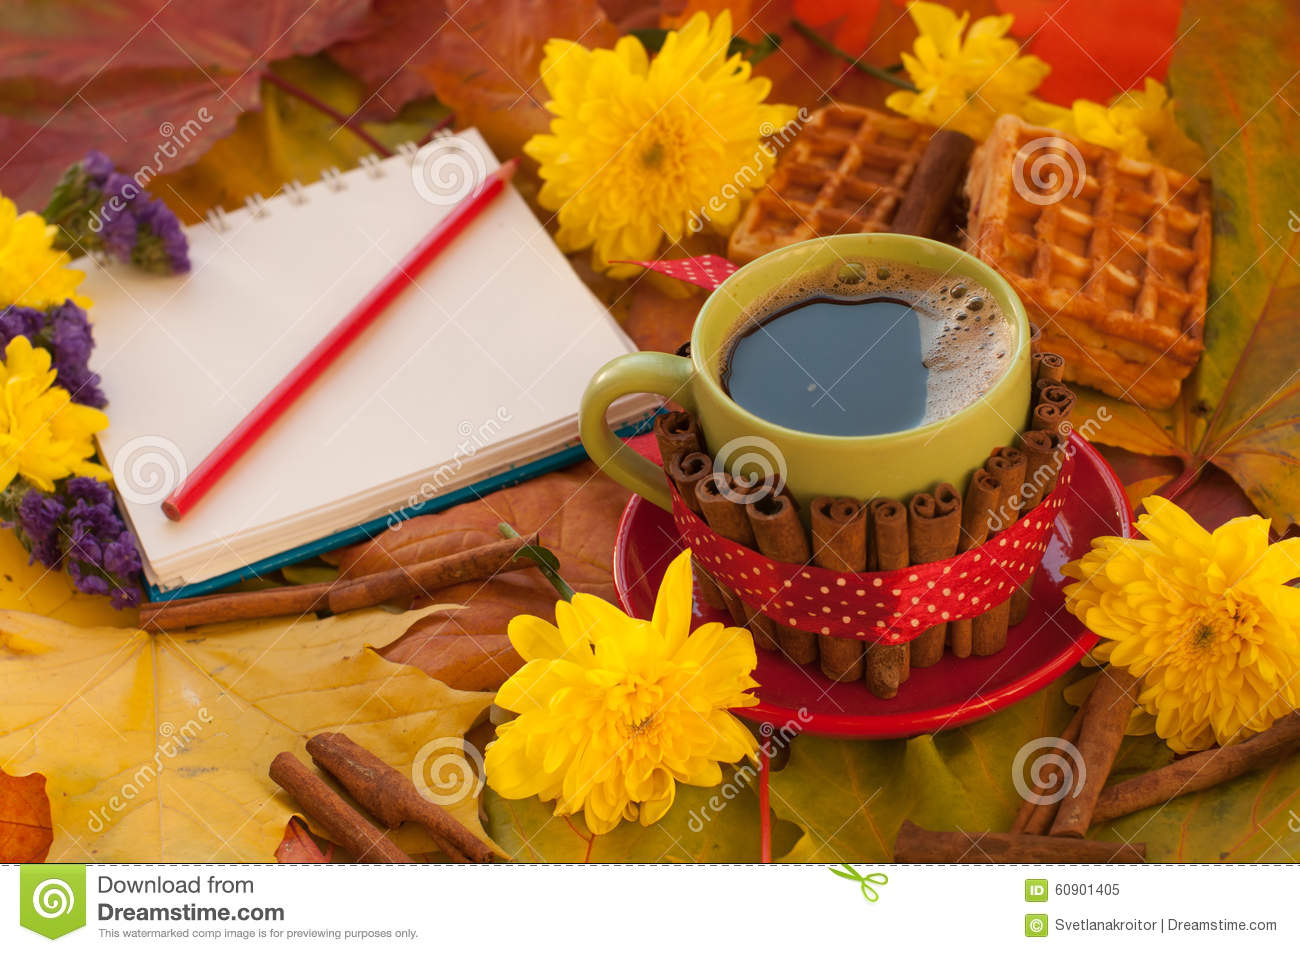 a cup of coffee a notebook homemade waffles maple leaves